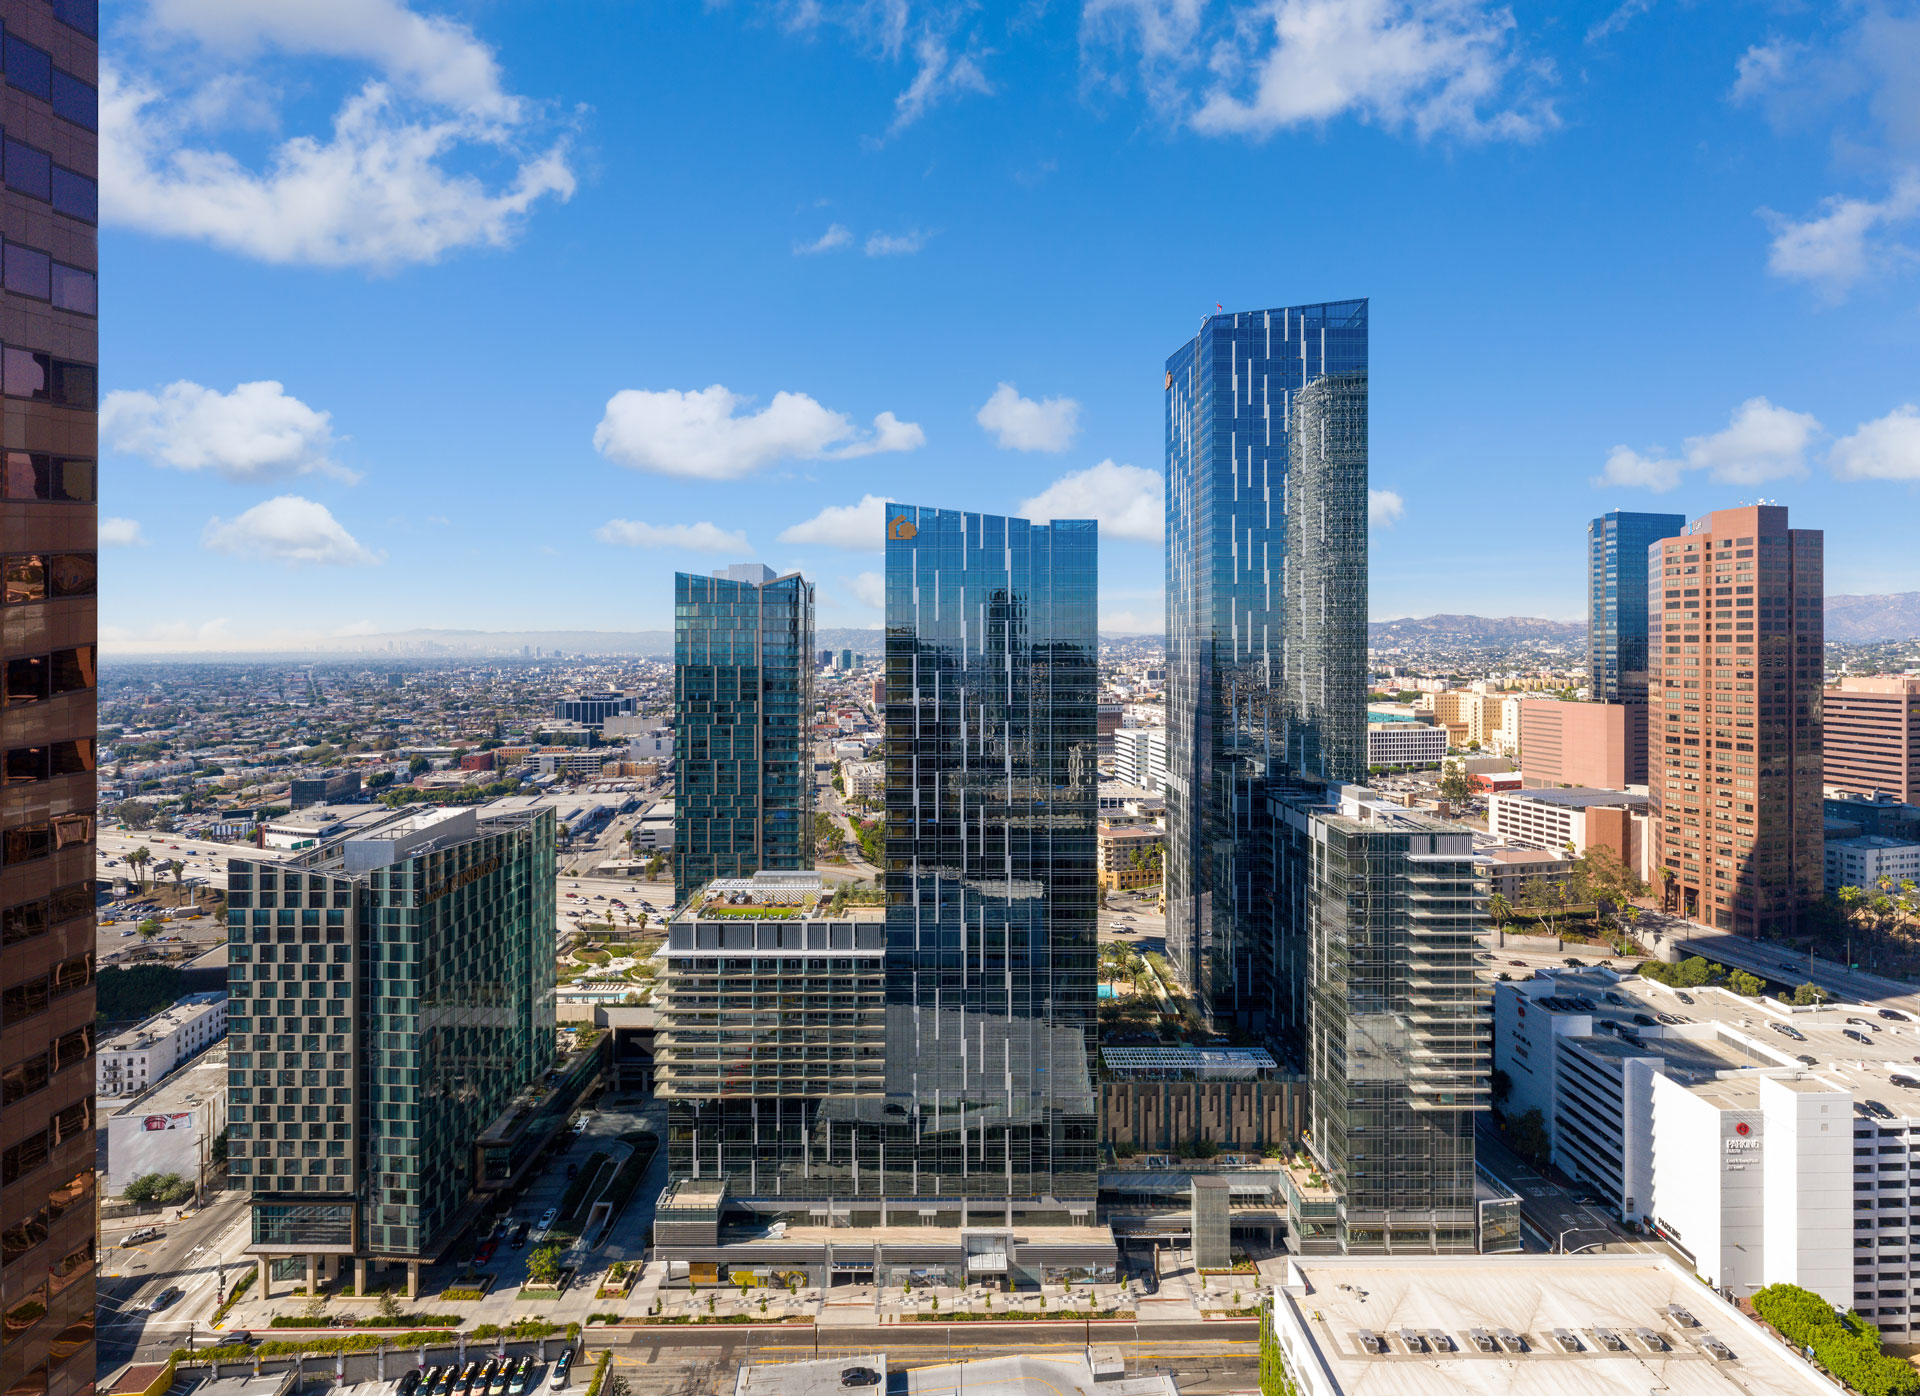 LA METROPOLIS, the largest mixed use developments in Los Angeles